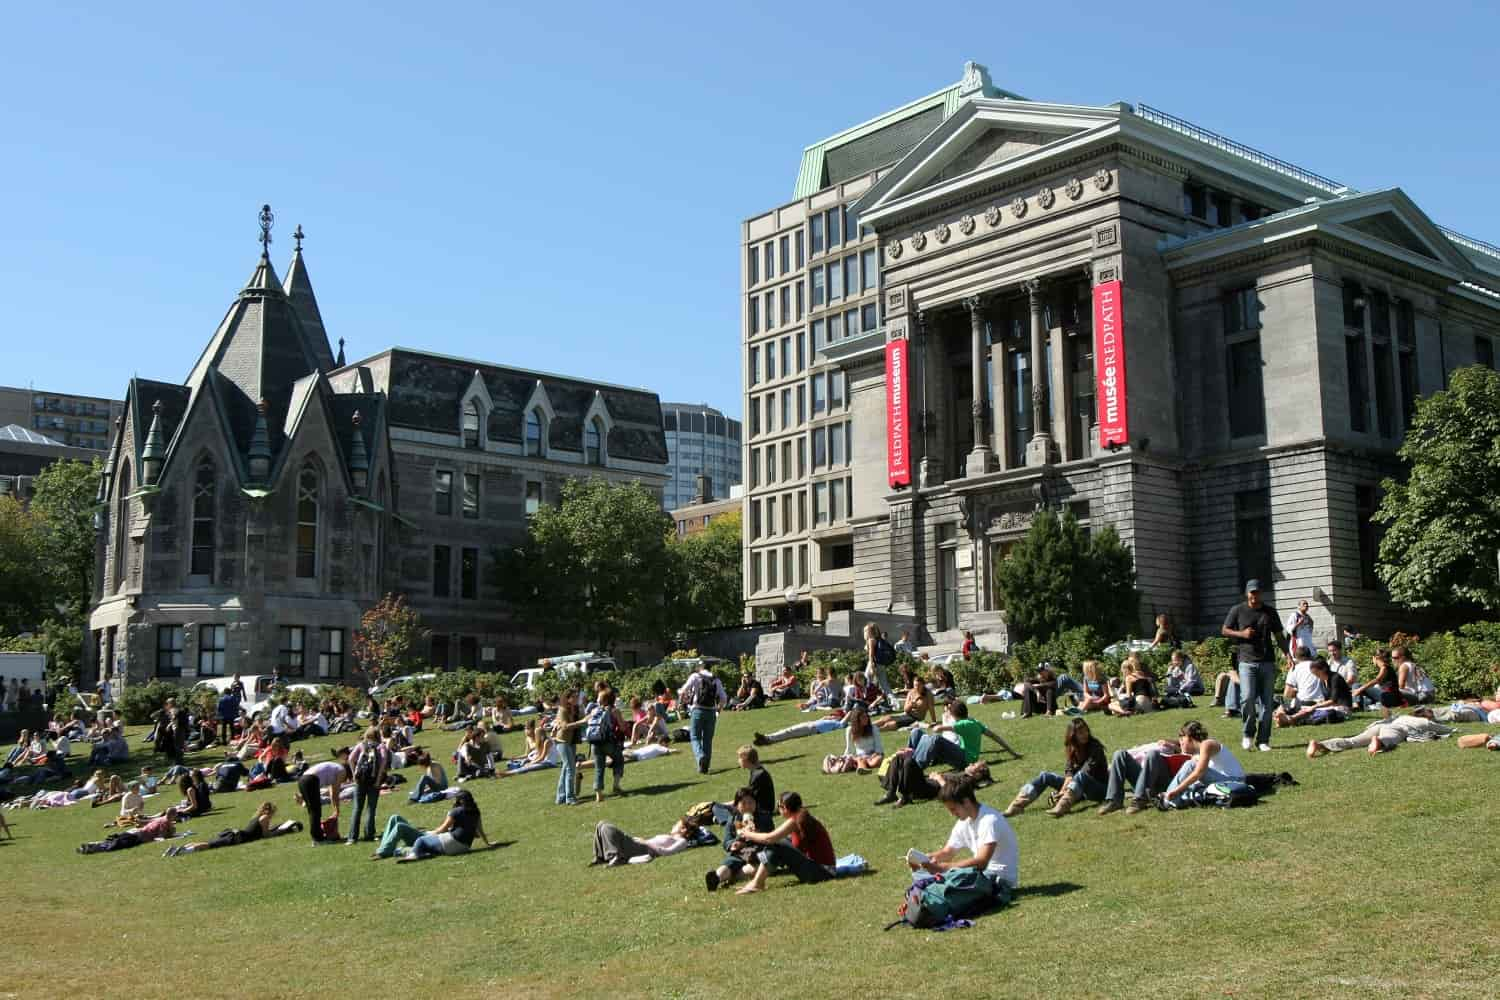 What is the acceptance rate and ranking of McGill University?